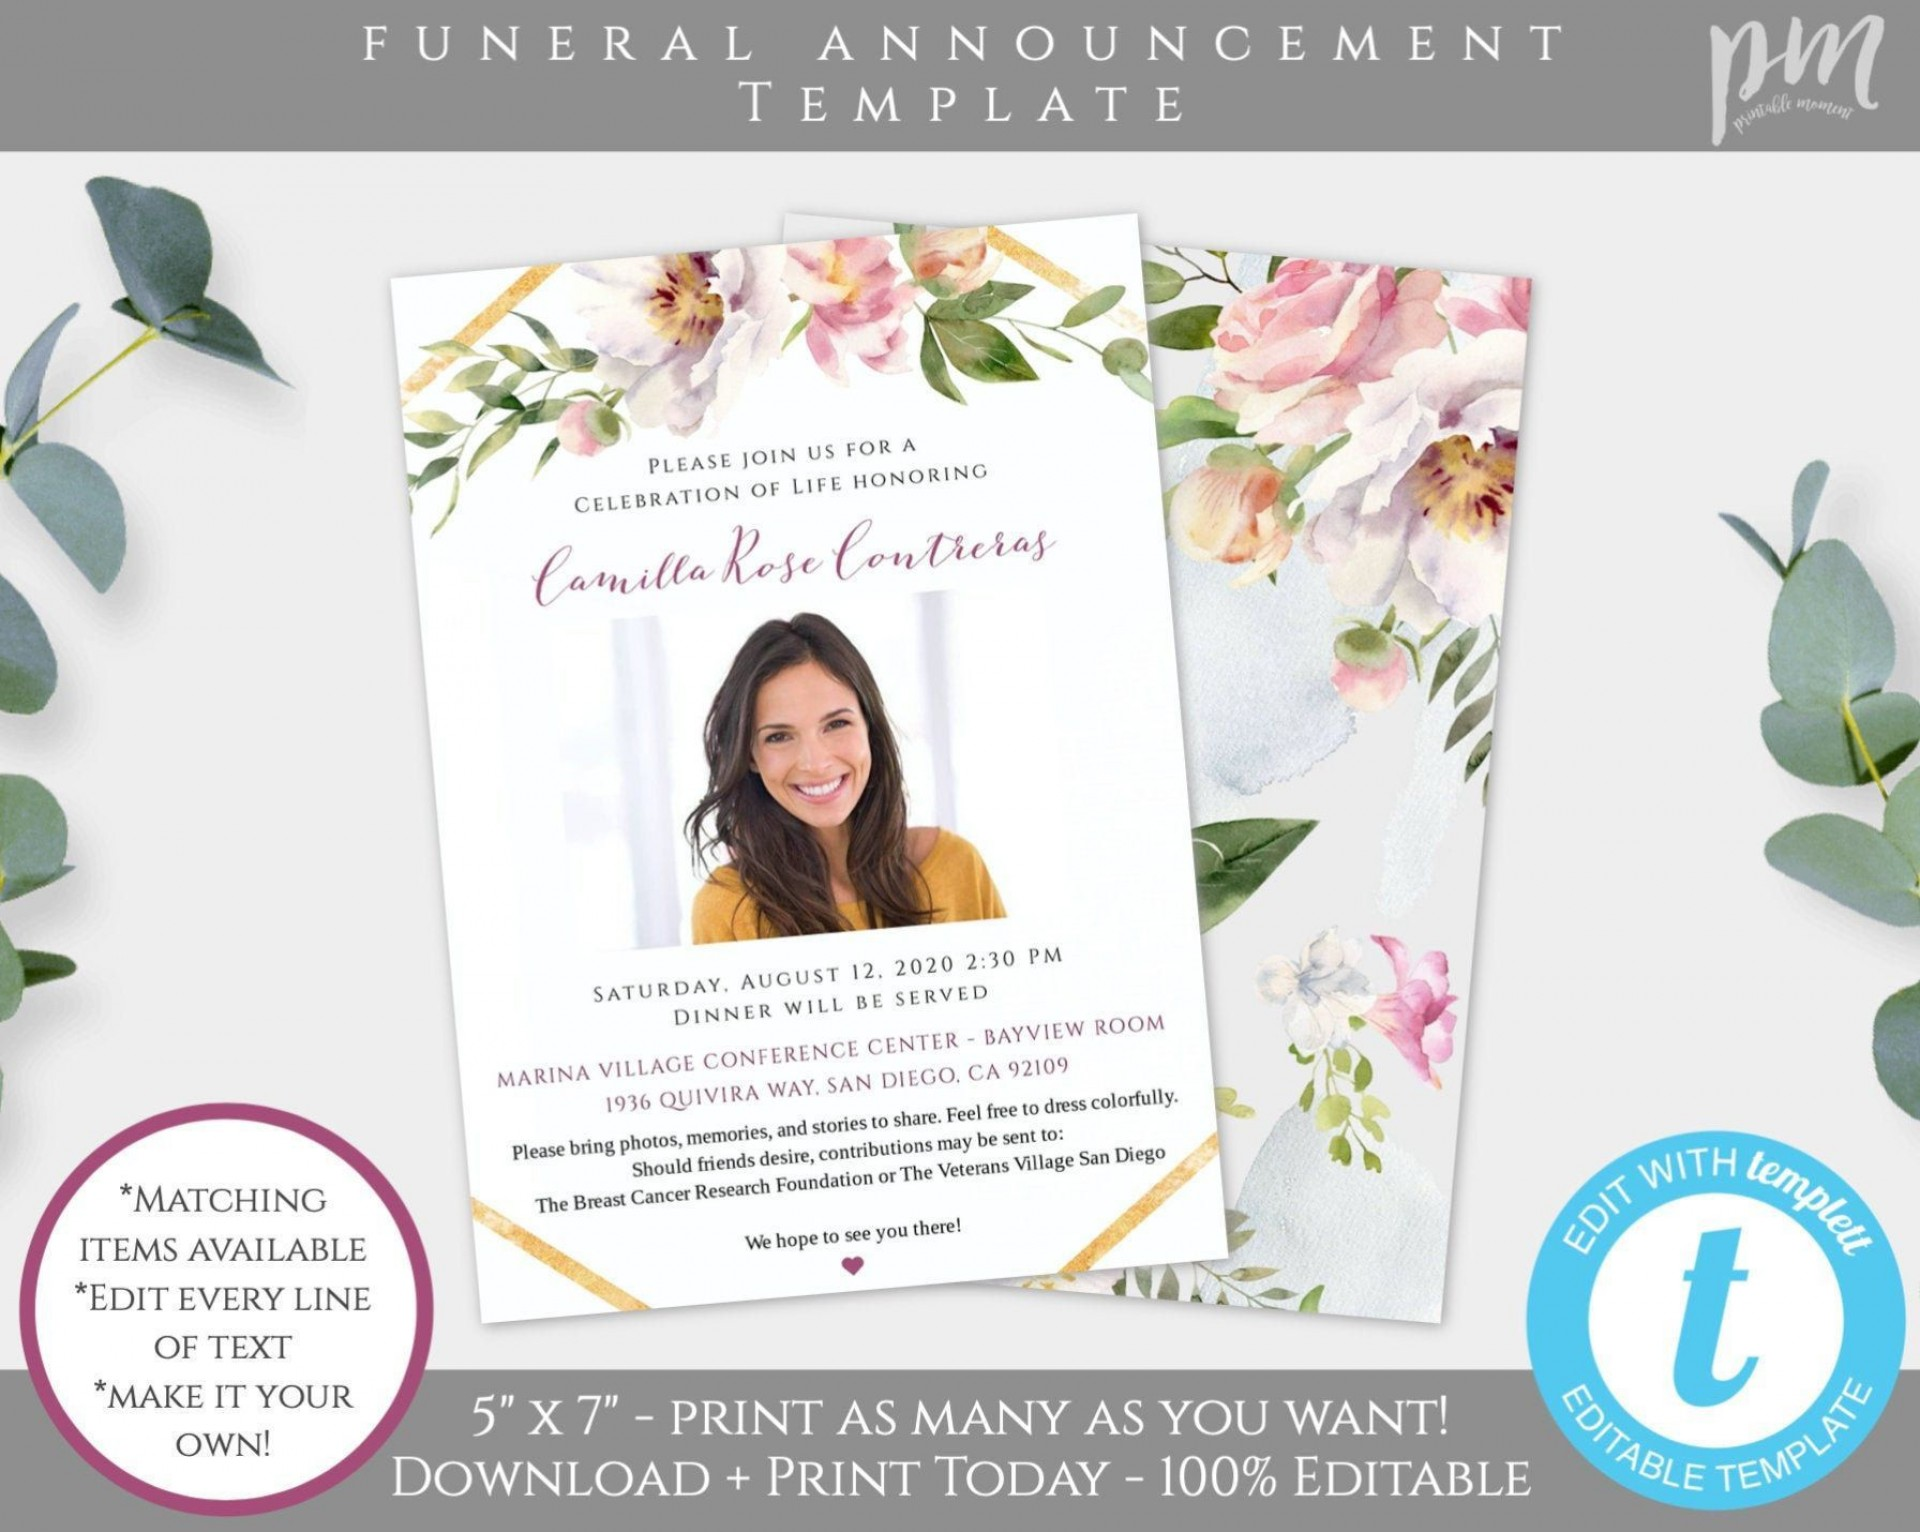 003 Unforgettable Celebration Of Life Template Free Download High Def  Invitation1920